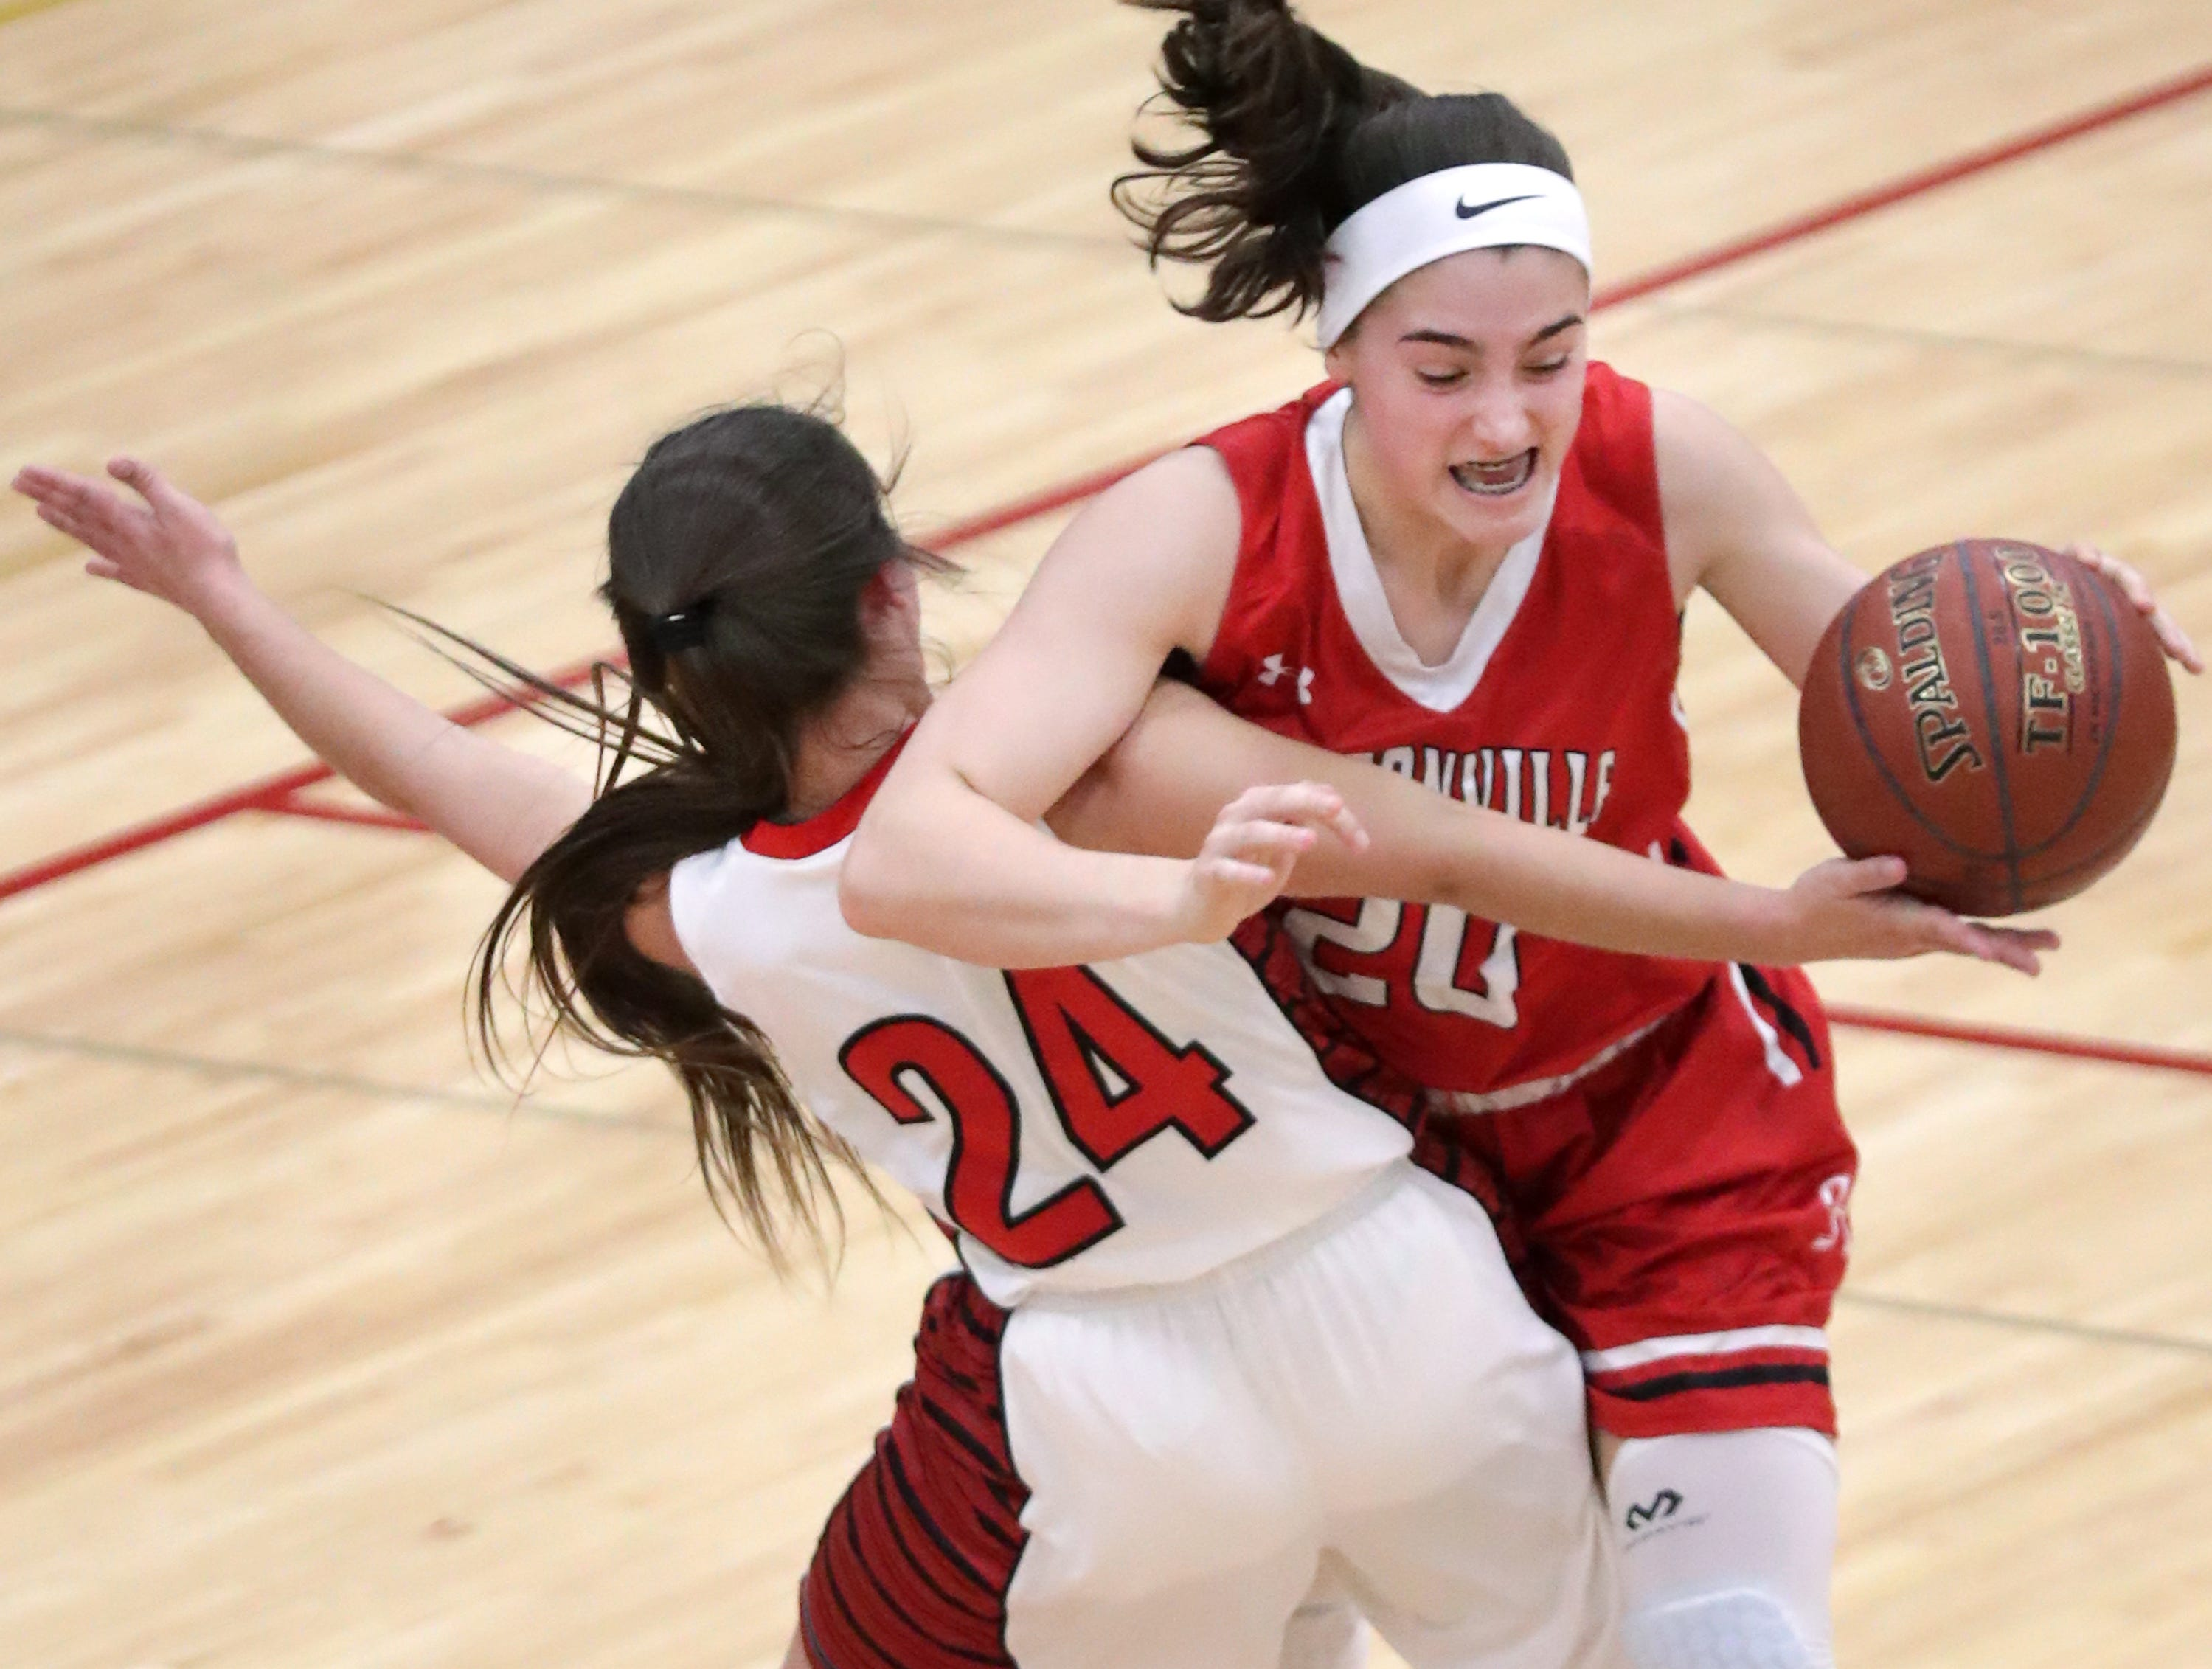 Hortonville High School's #20 Lyric Johnson against New London High School's #24 Samantha Pfefferle during their WIAA Division 2 girls basketball sectional semifinal gameThursday, February 28, 2019, at Kimberly High School in Kimberly, Wis. Hortonville defeated New London 67 to 42.